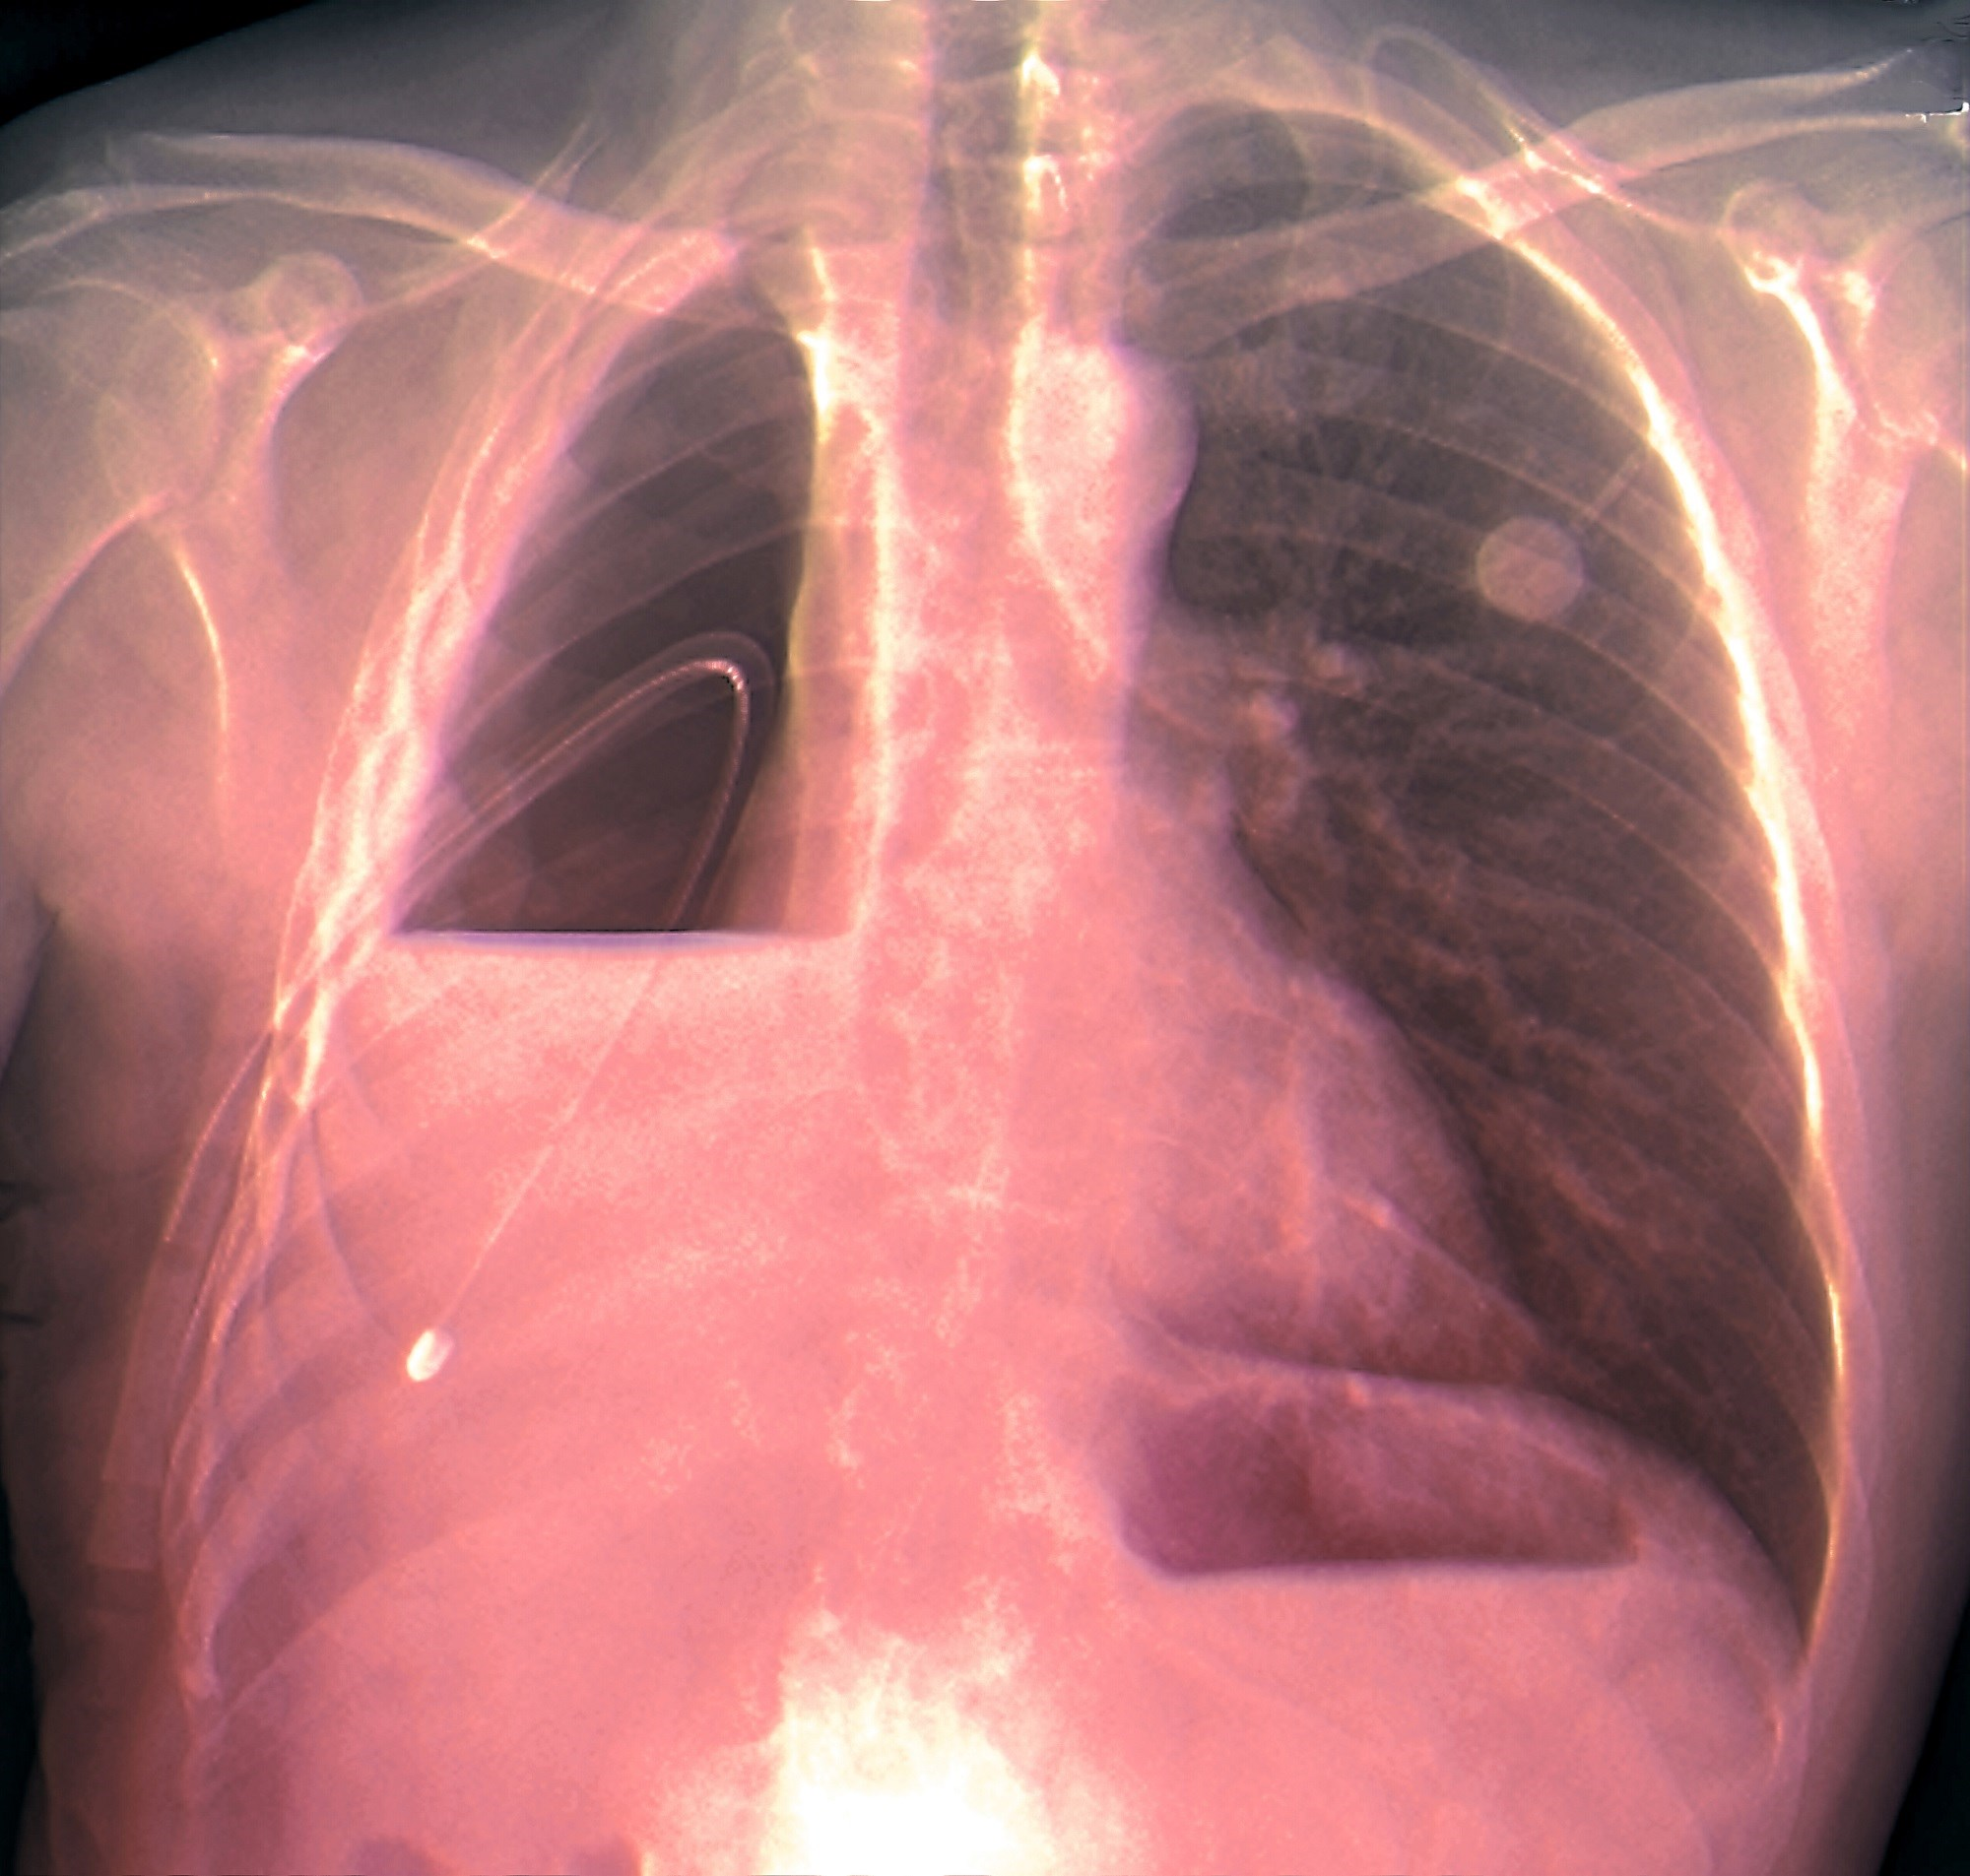 Cancers of the lung, breast, and ovaries comprise approximately 75% of malignant pleural effusions.